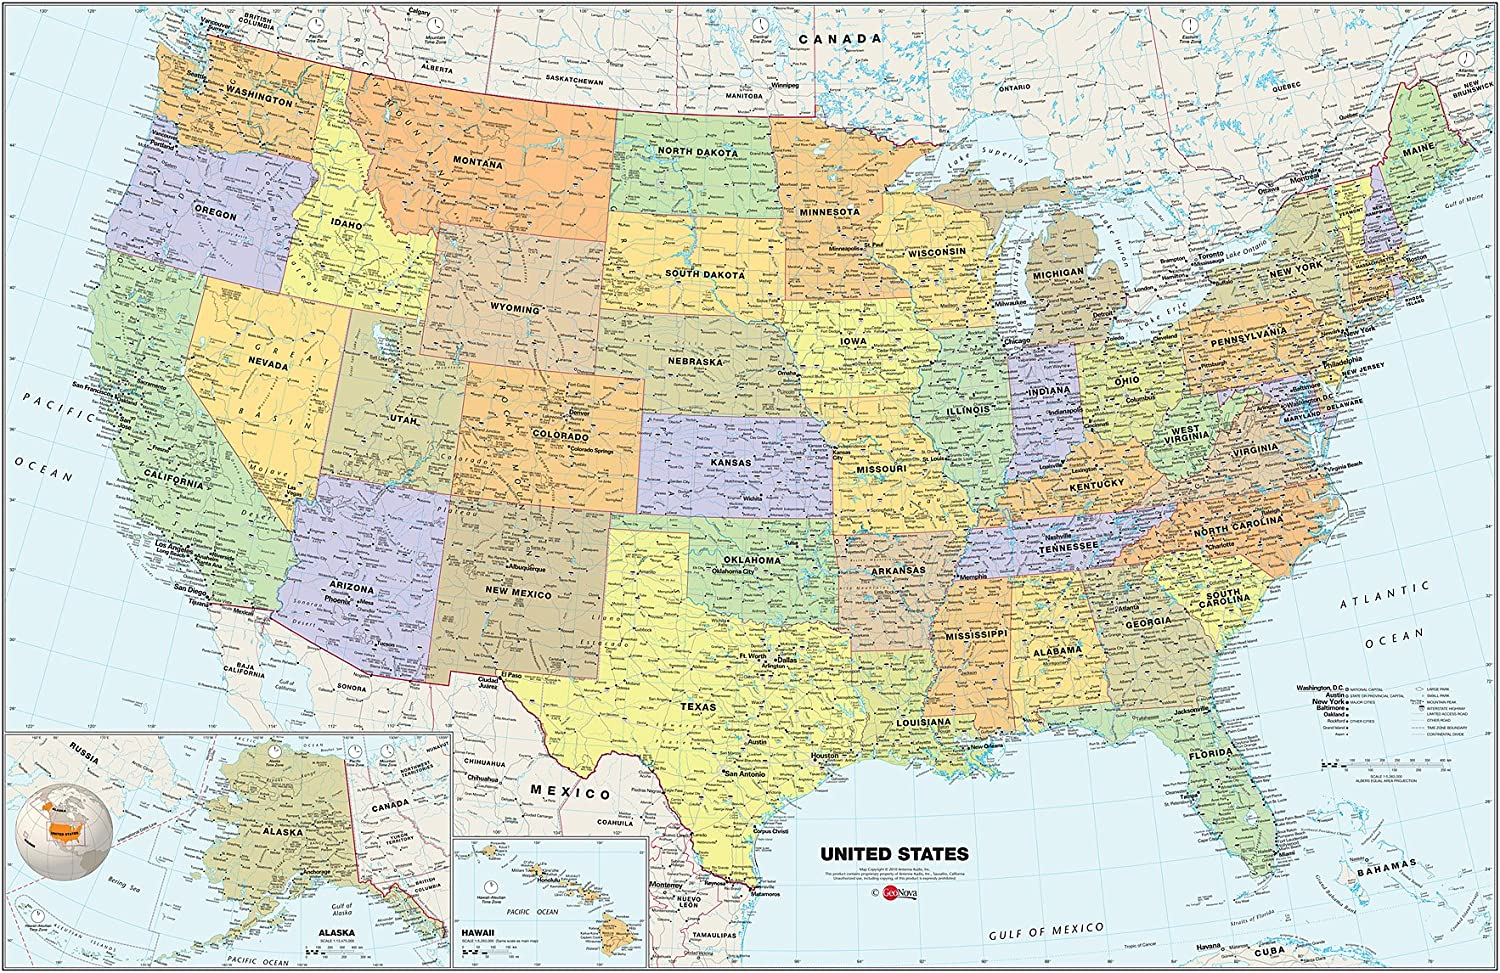 Usa Dry Erase Map Decal Dry Erase Maps on travel map, rainbow map, magnetic map, butterfly map, disney map, peel stick wall map, stars map, halloween map, dry line map, metal map,